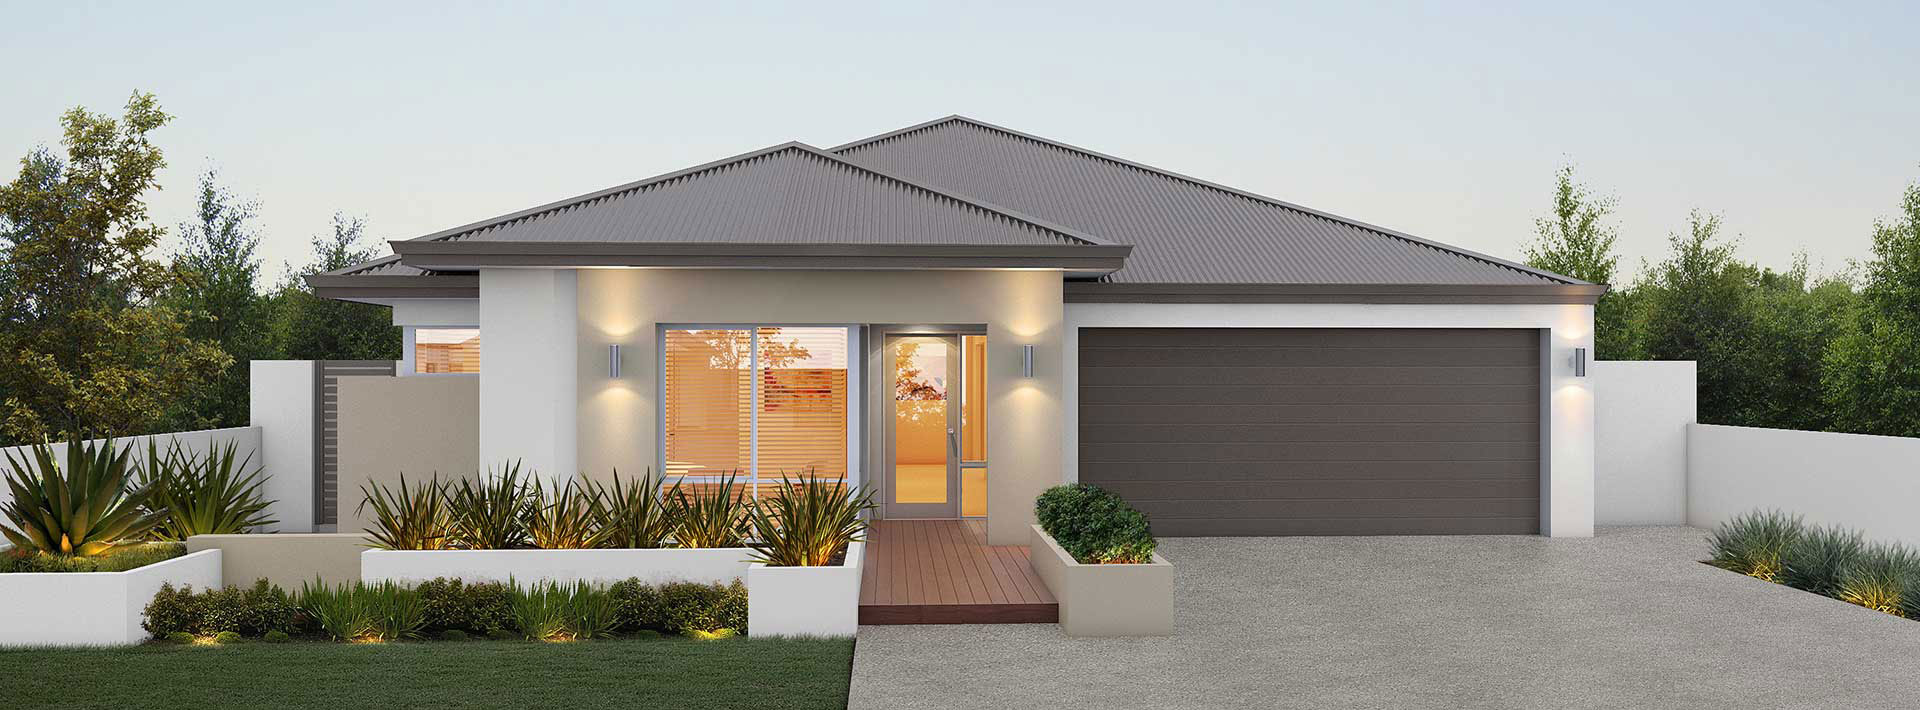 "House frontage of single storey home design ""My California"""